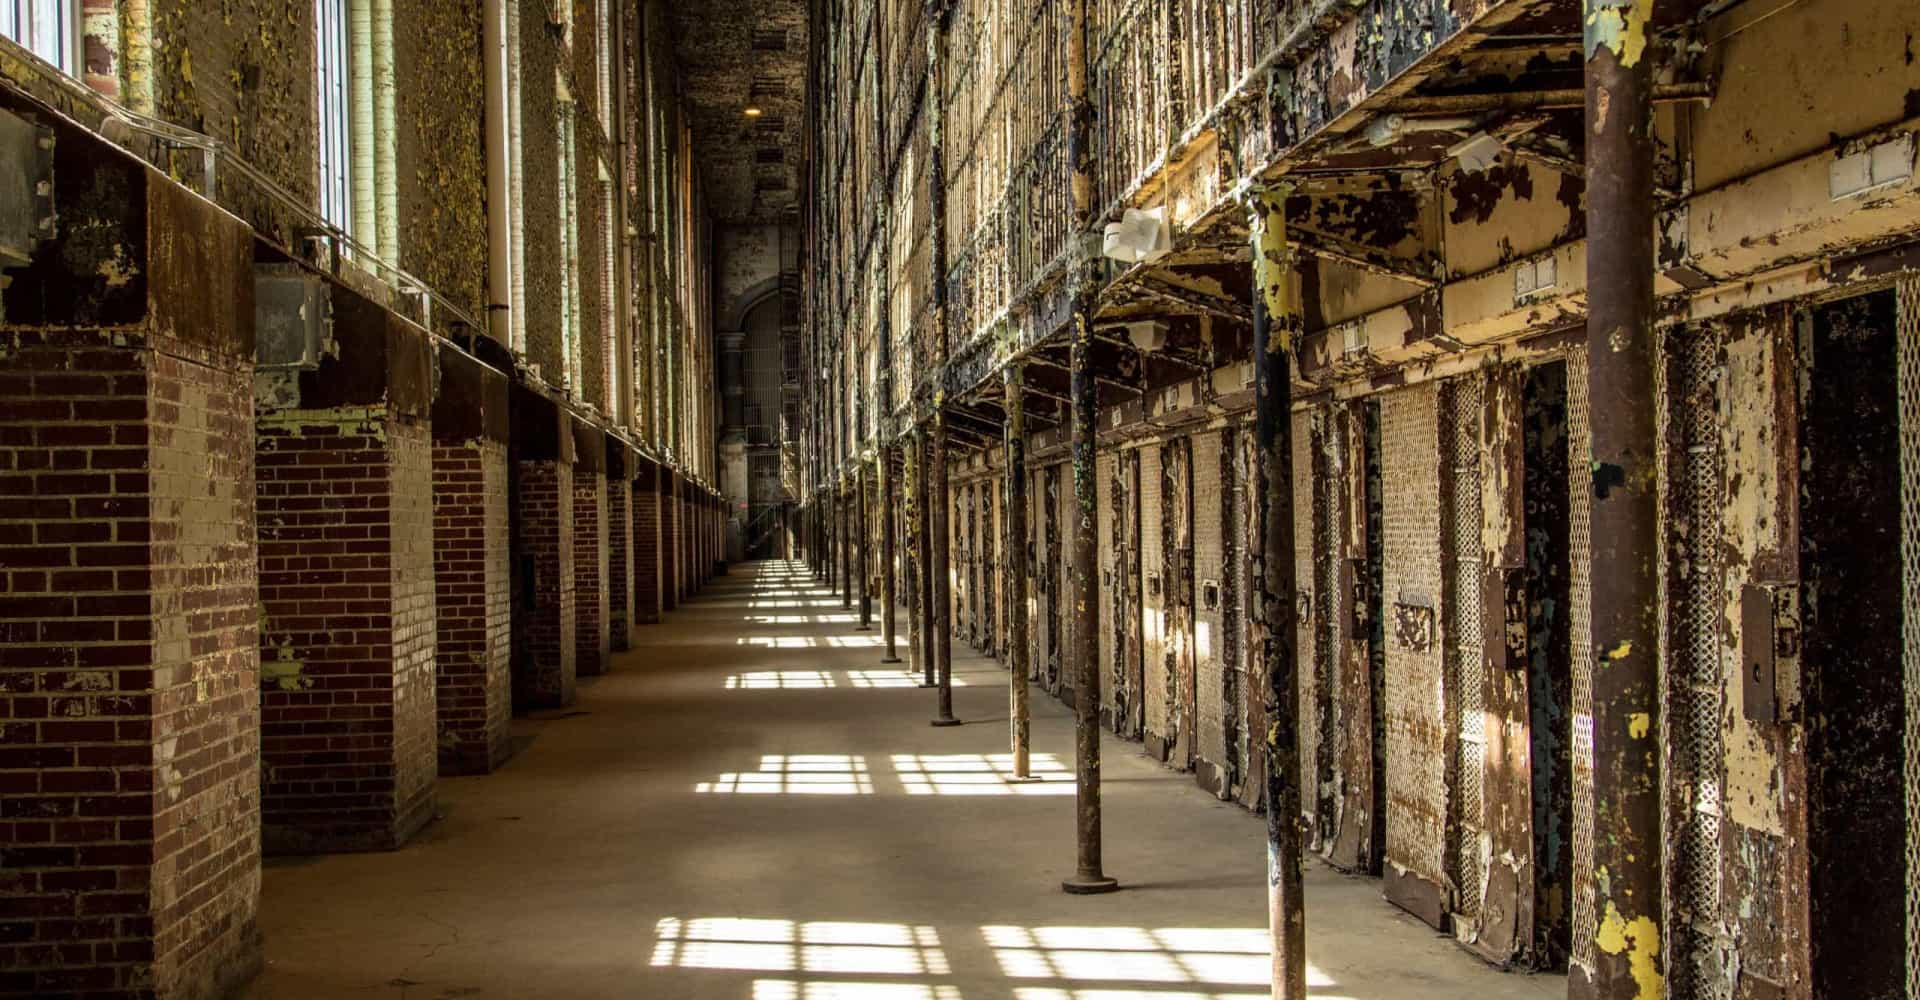 creepy prisons from history